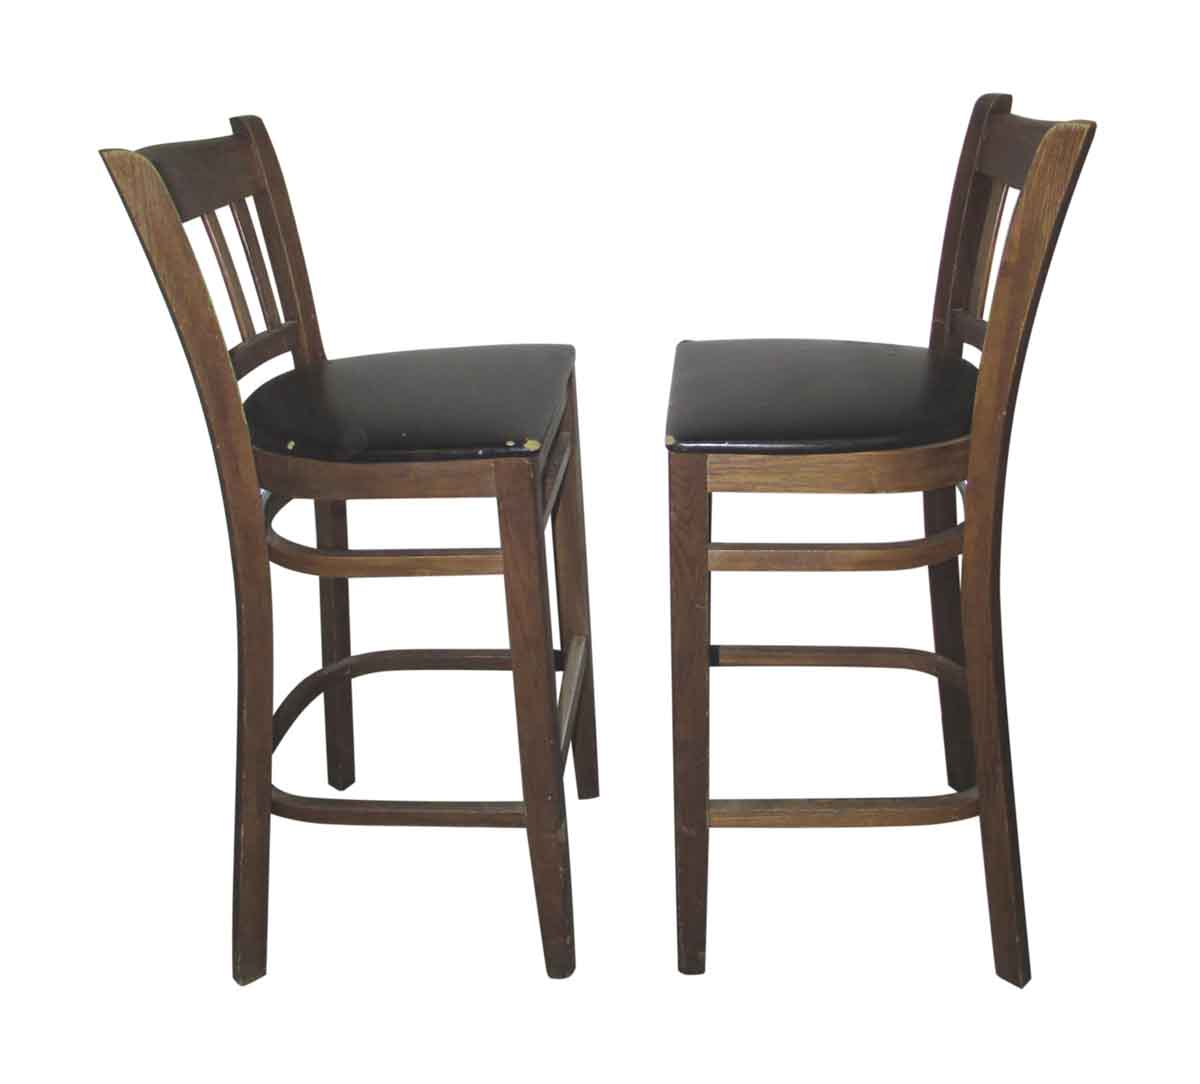 Wonderful image of Wooden Bar Stools with Slatted Backs Olde Good Things with #785F48 color and 1200x1084 pixels